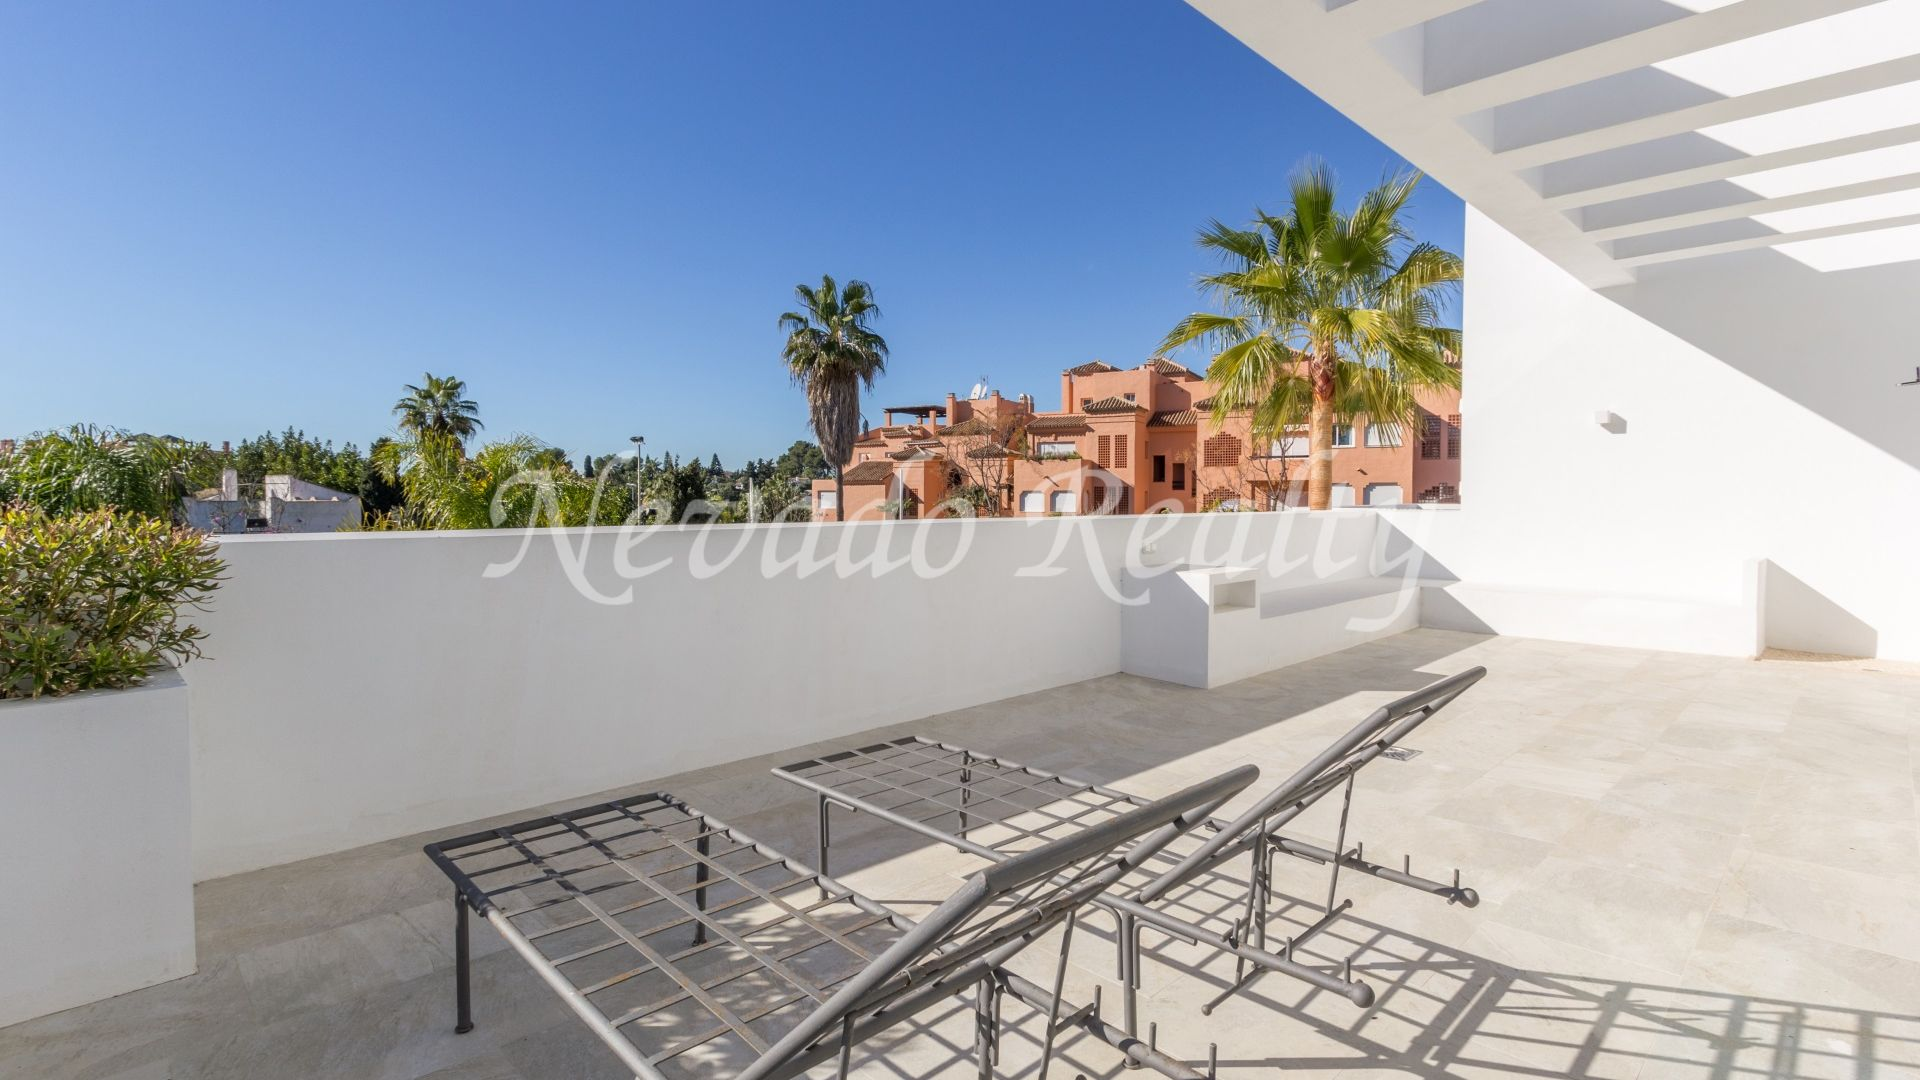 Brand new contemporary villa within walking distance tothe beach in Casasola